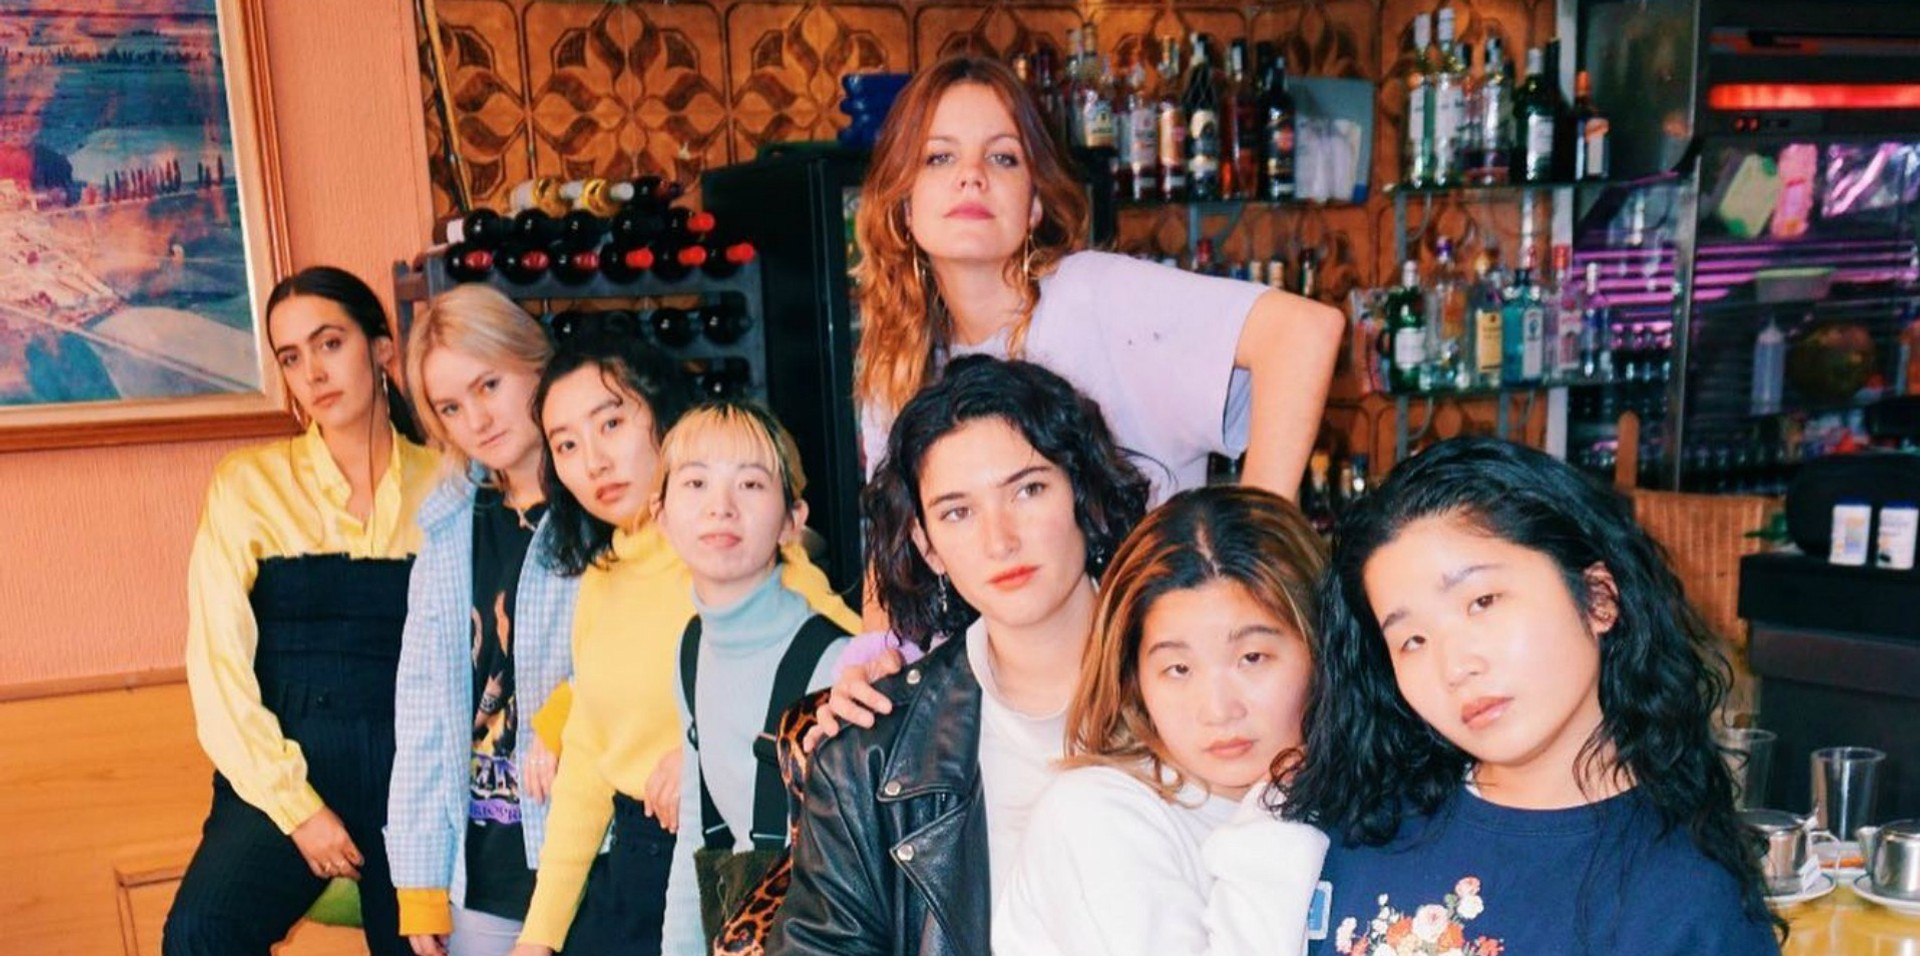 Join the 'United Girls Rock 'n' Roll Club' with CHAI and Hinds – listen